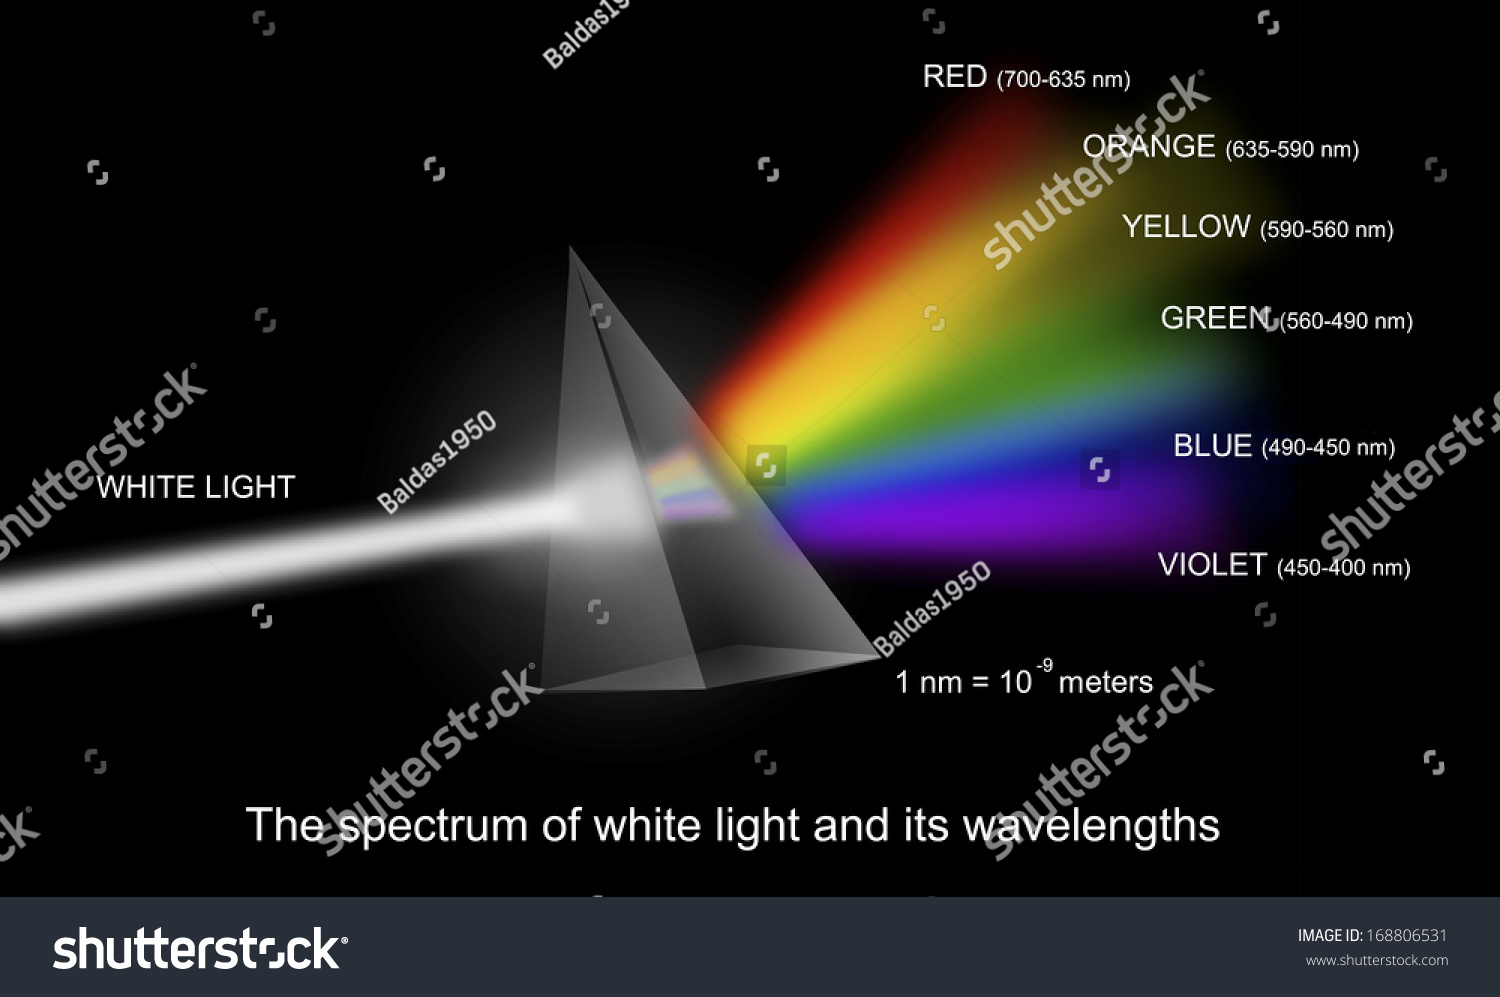 Visual Display Of Wavelengths Of White Light In Terms Of